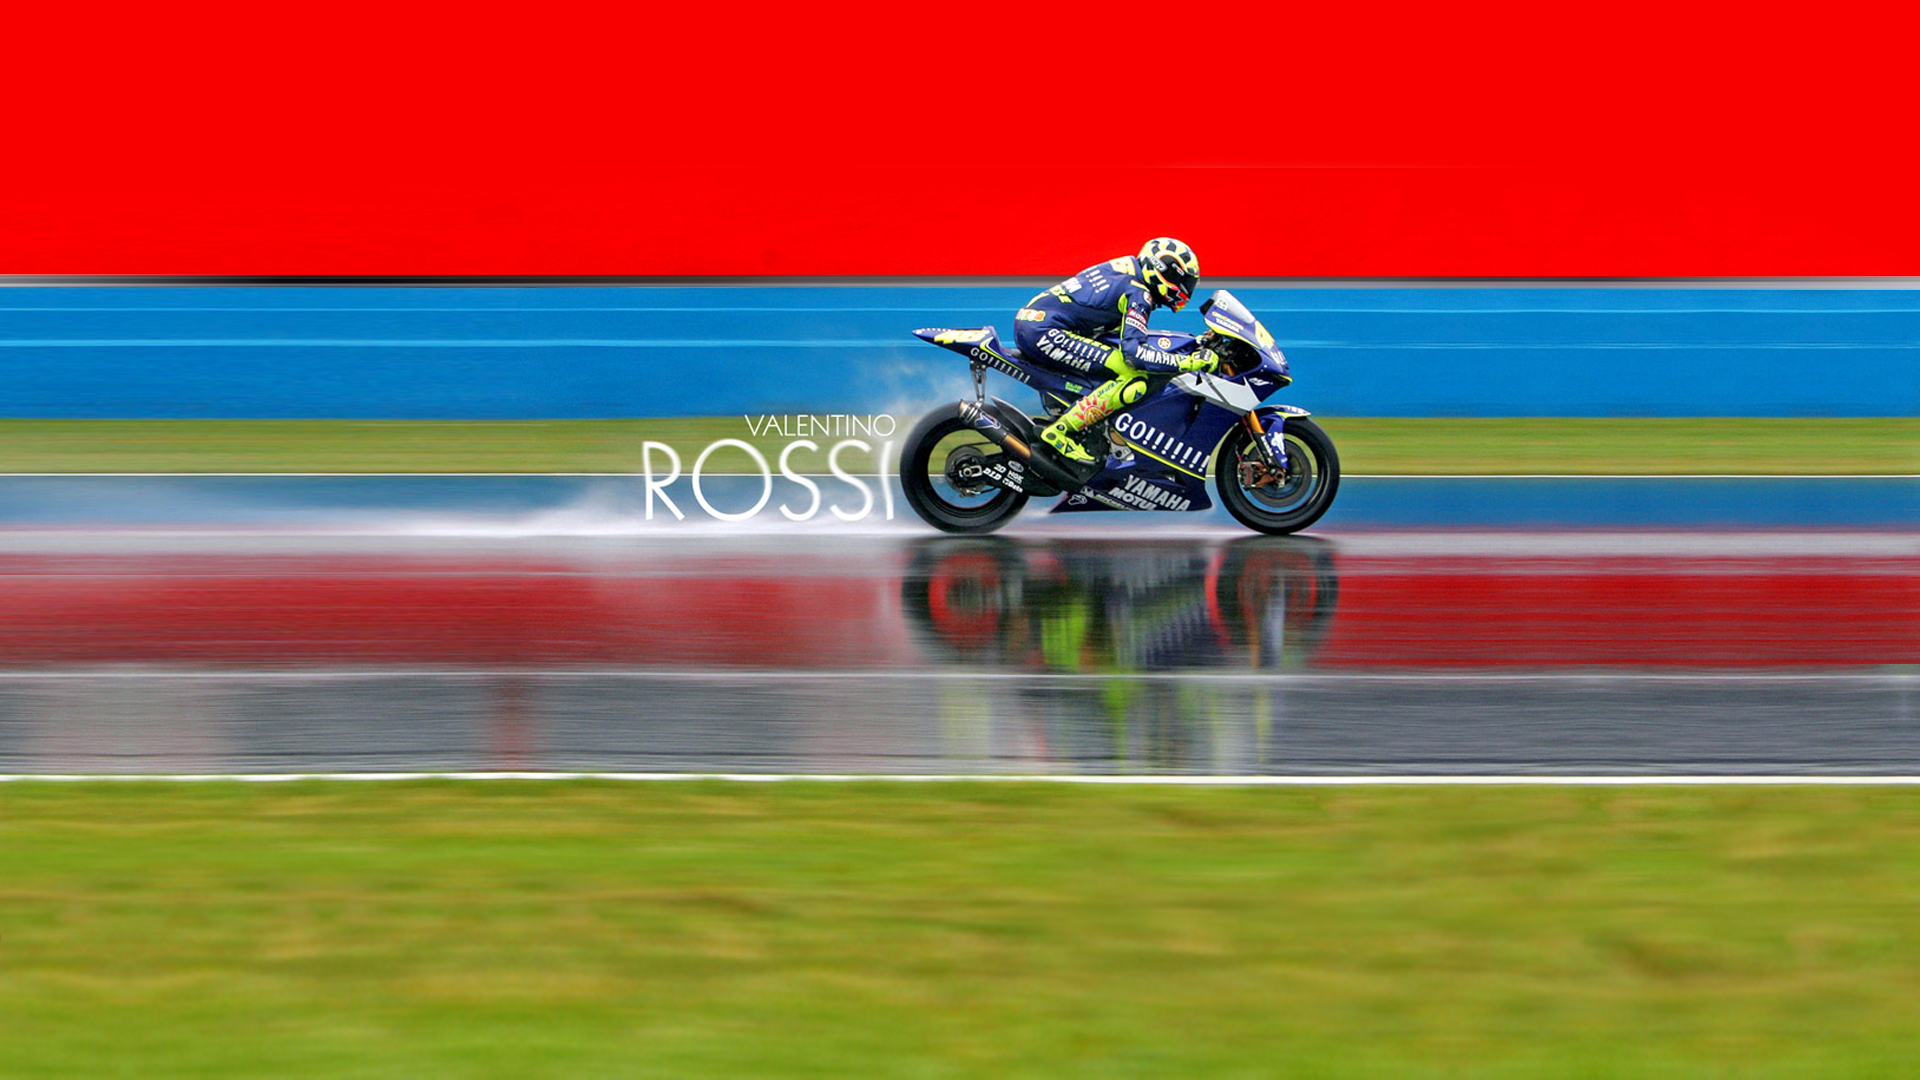 Valentino Rossi MotoGP Racer Wallpapers HD Wallpapers 1920x1080